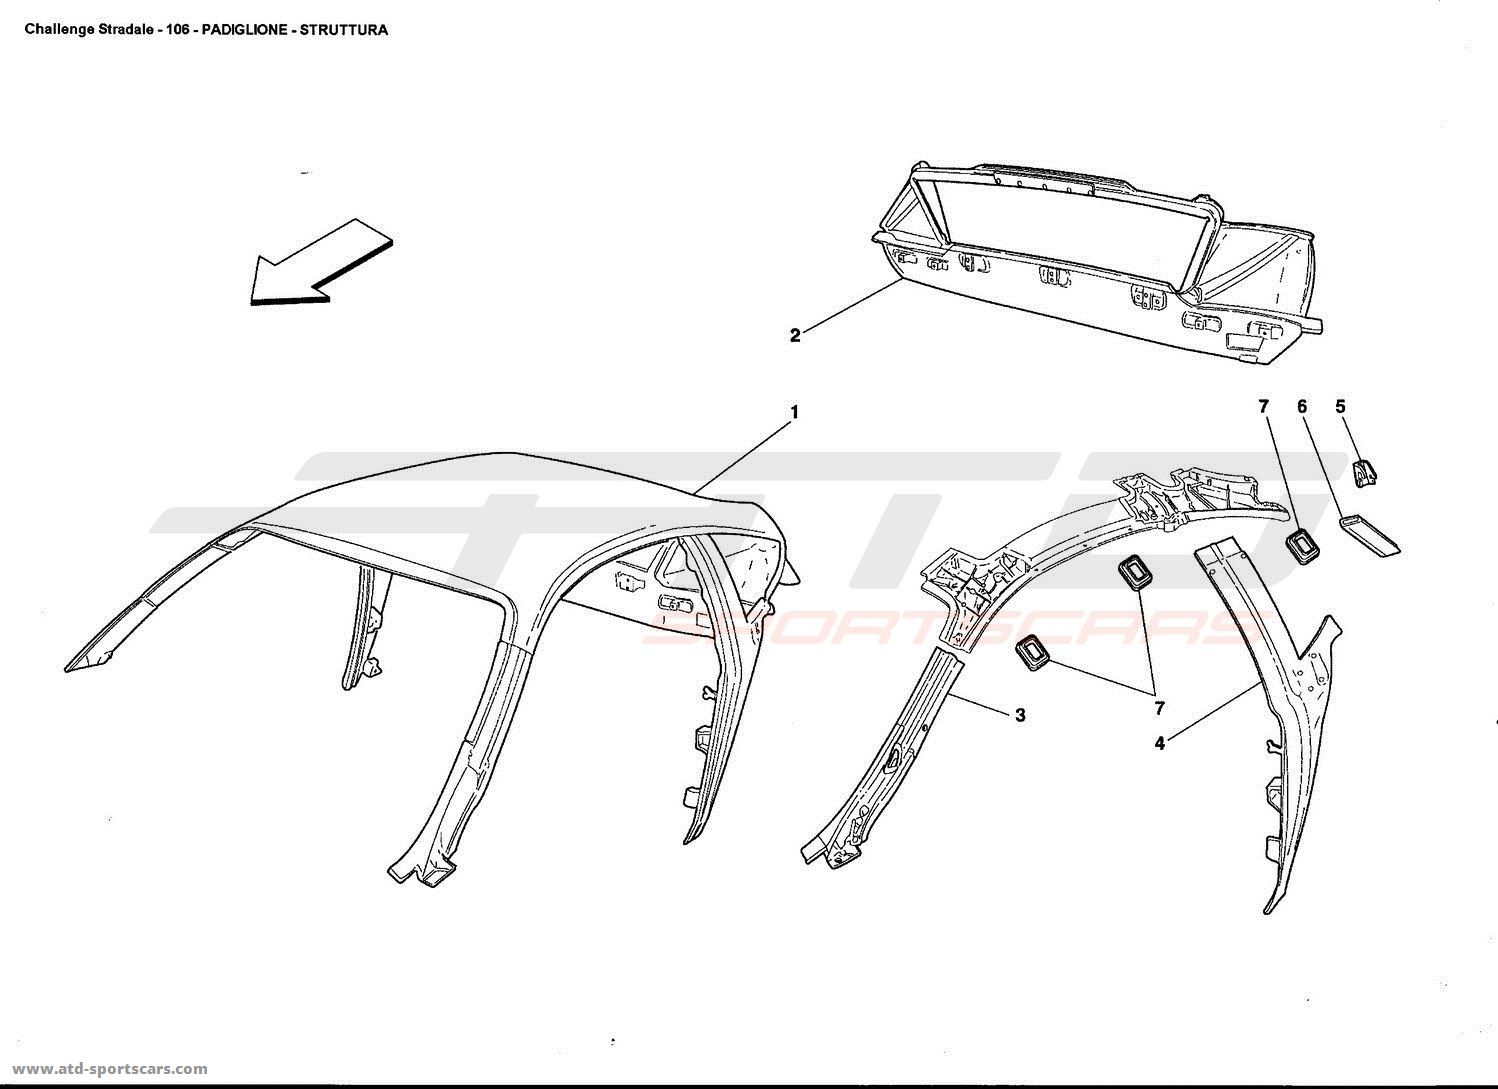 Ferrari 360 Challenge stradale ROOF - STRUCTURE